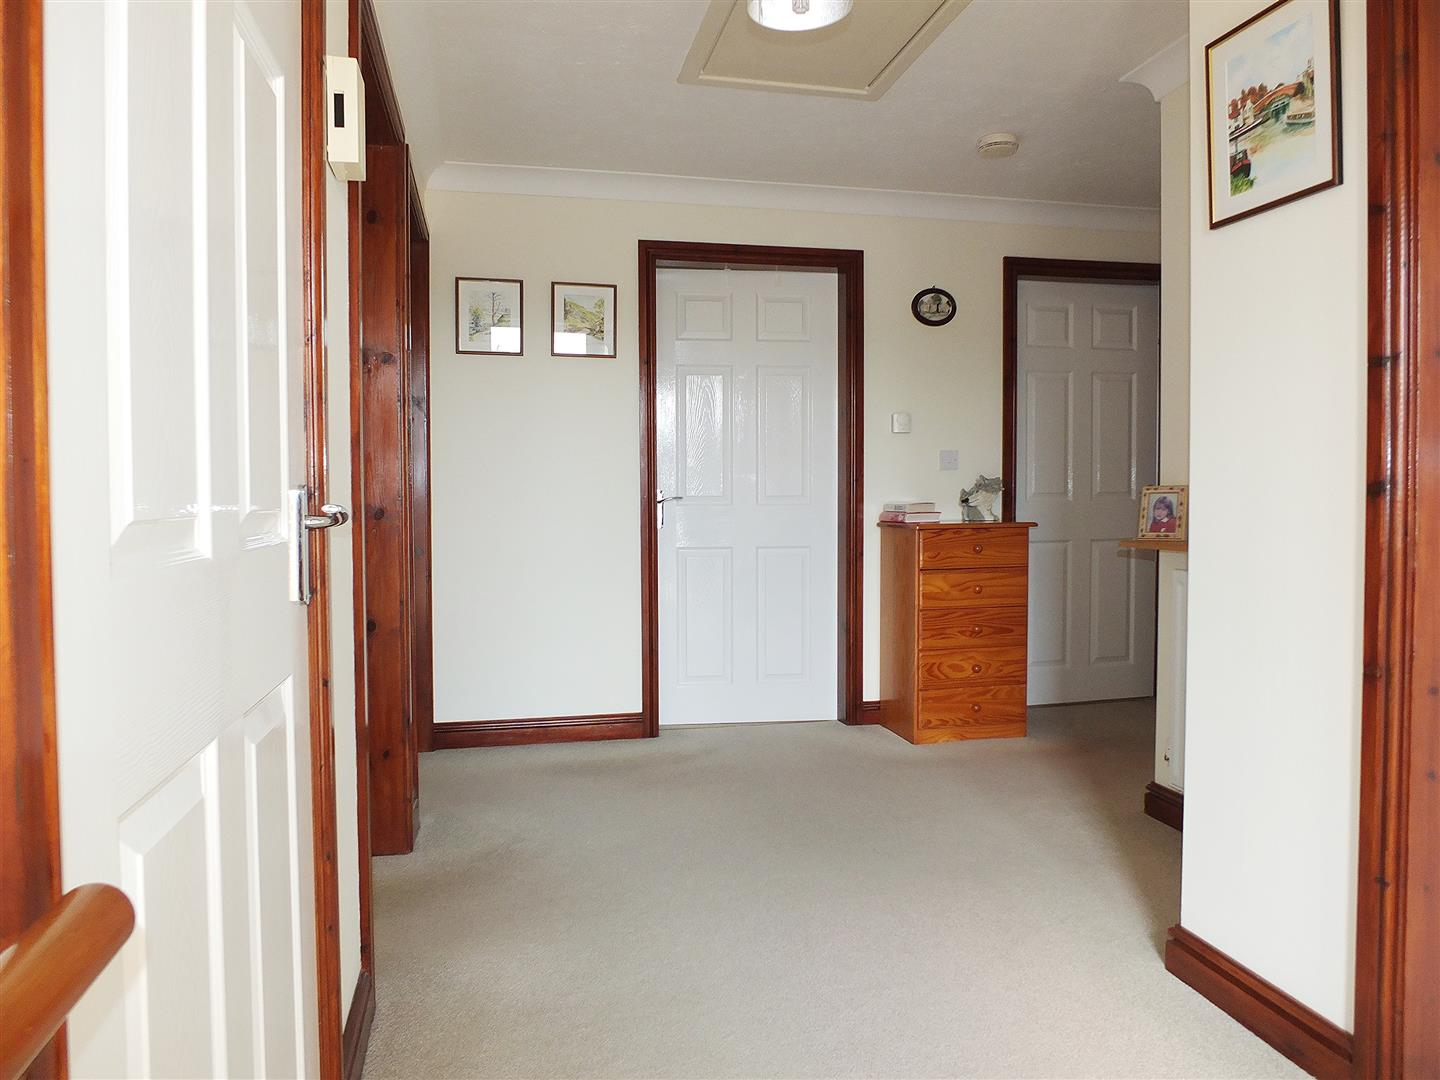 3 bed detached bungalow for sale in Long Sutton Spalding, PE12 9FT  - Property Image 14